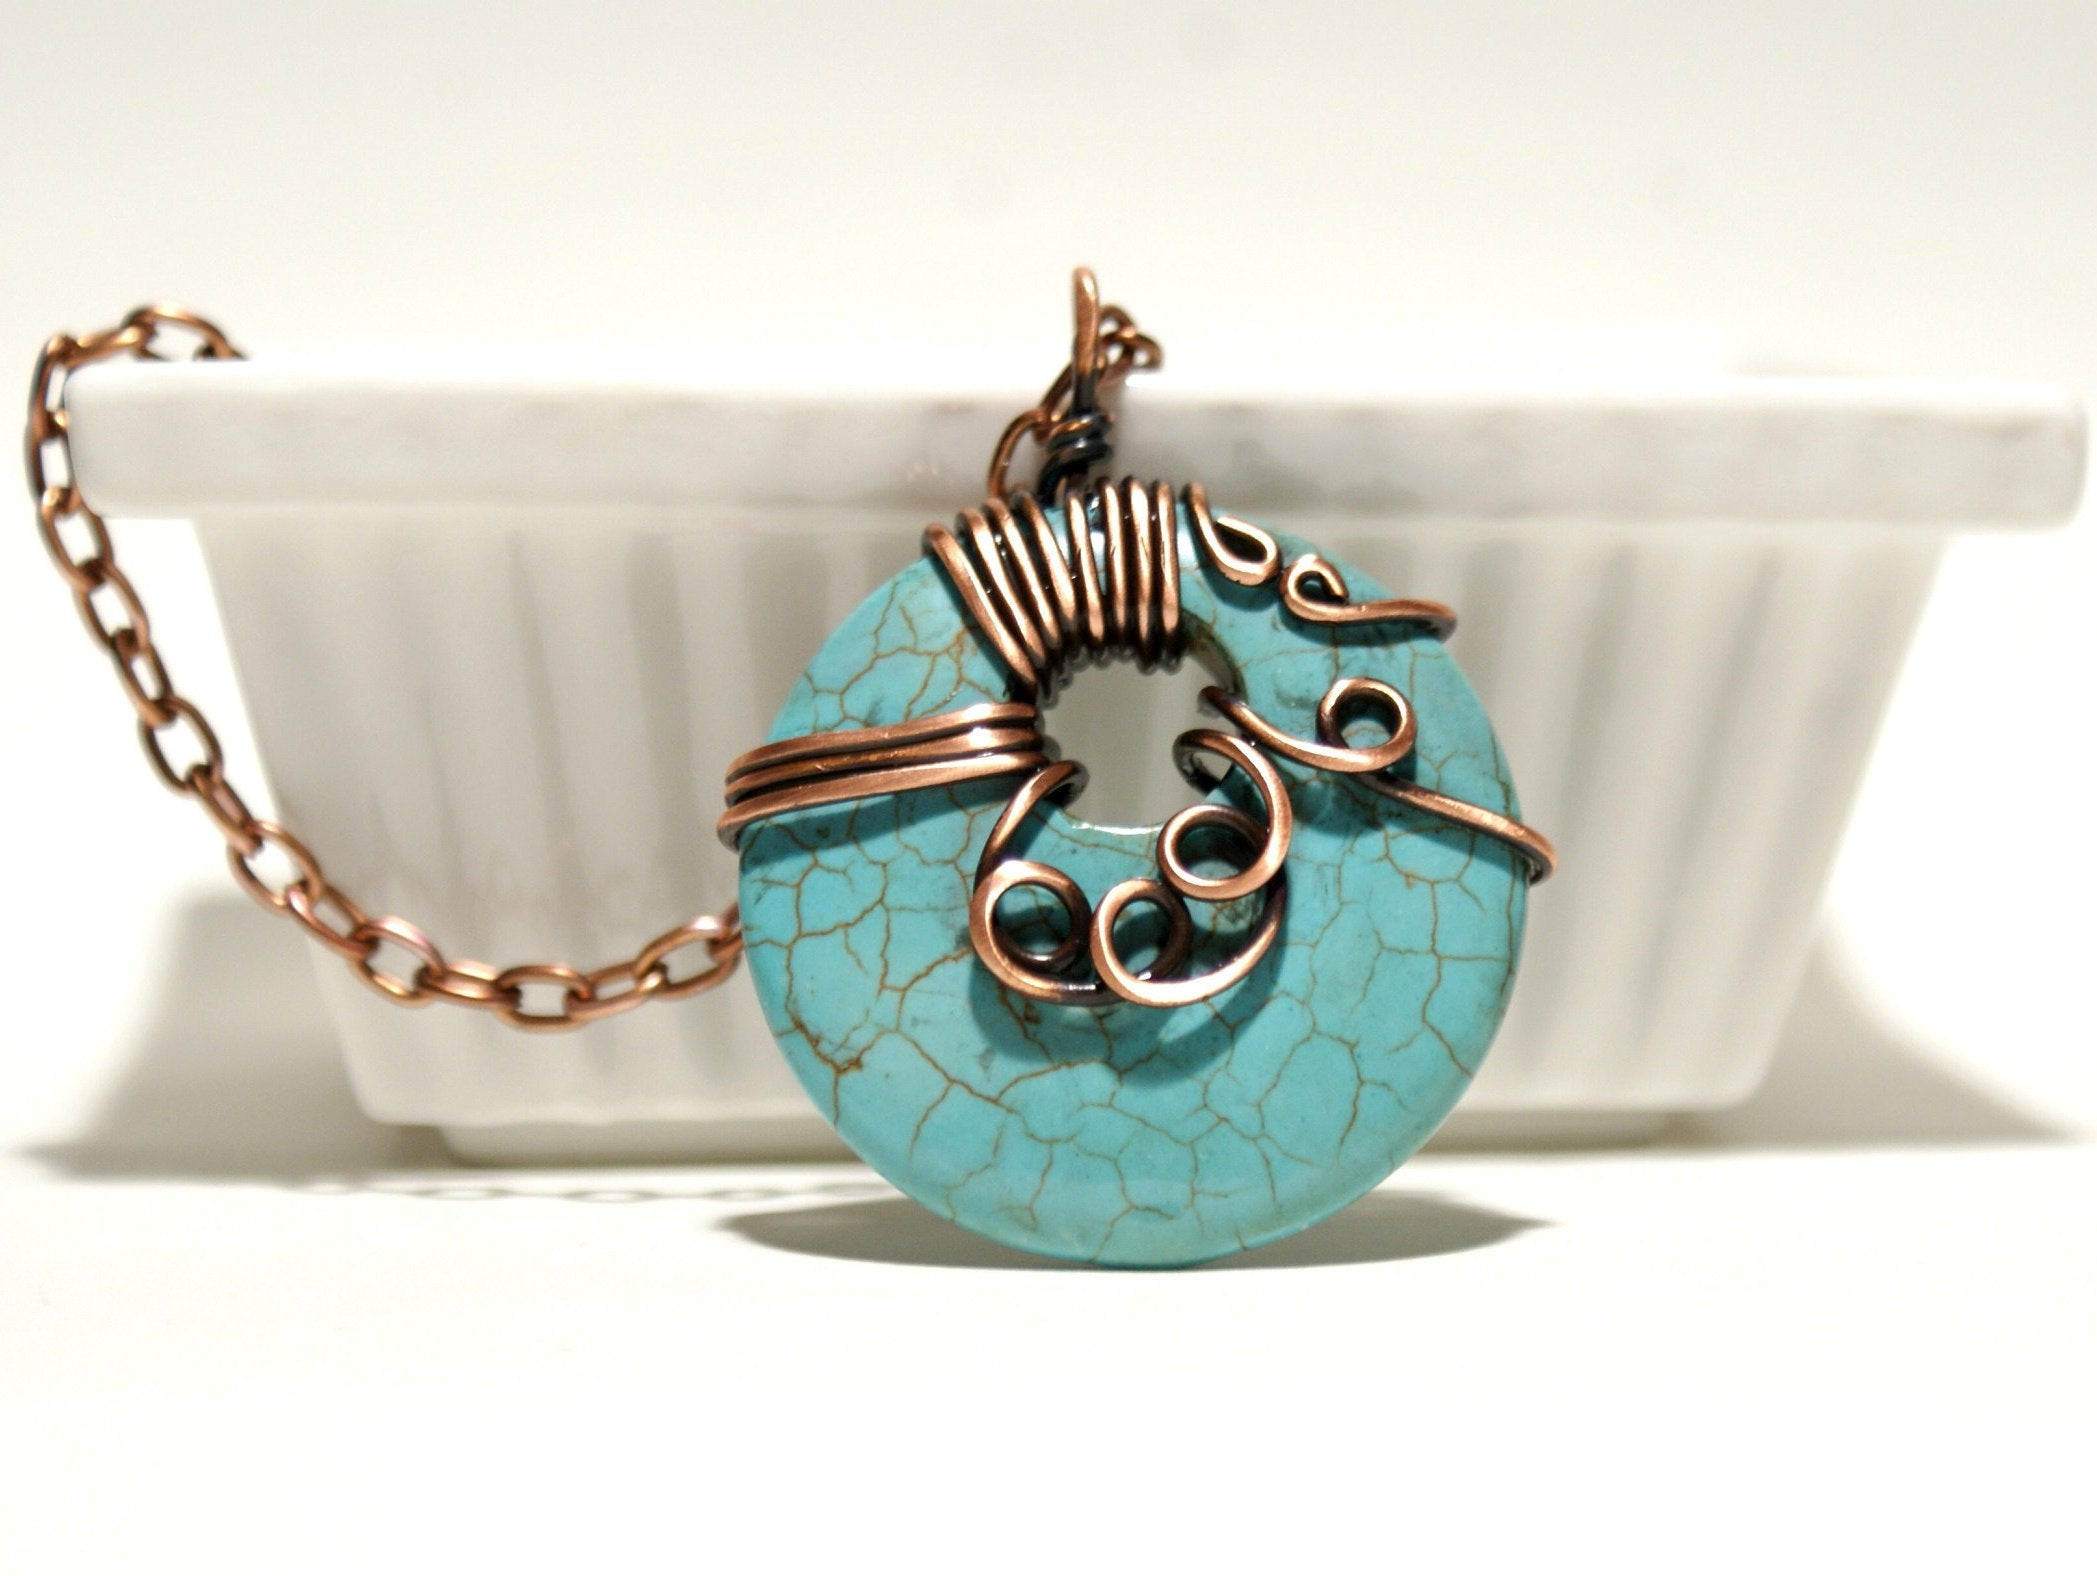 Handmade Wire Wrap Turquoise Pendant Necklace - Babazen